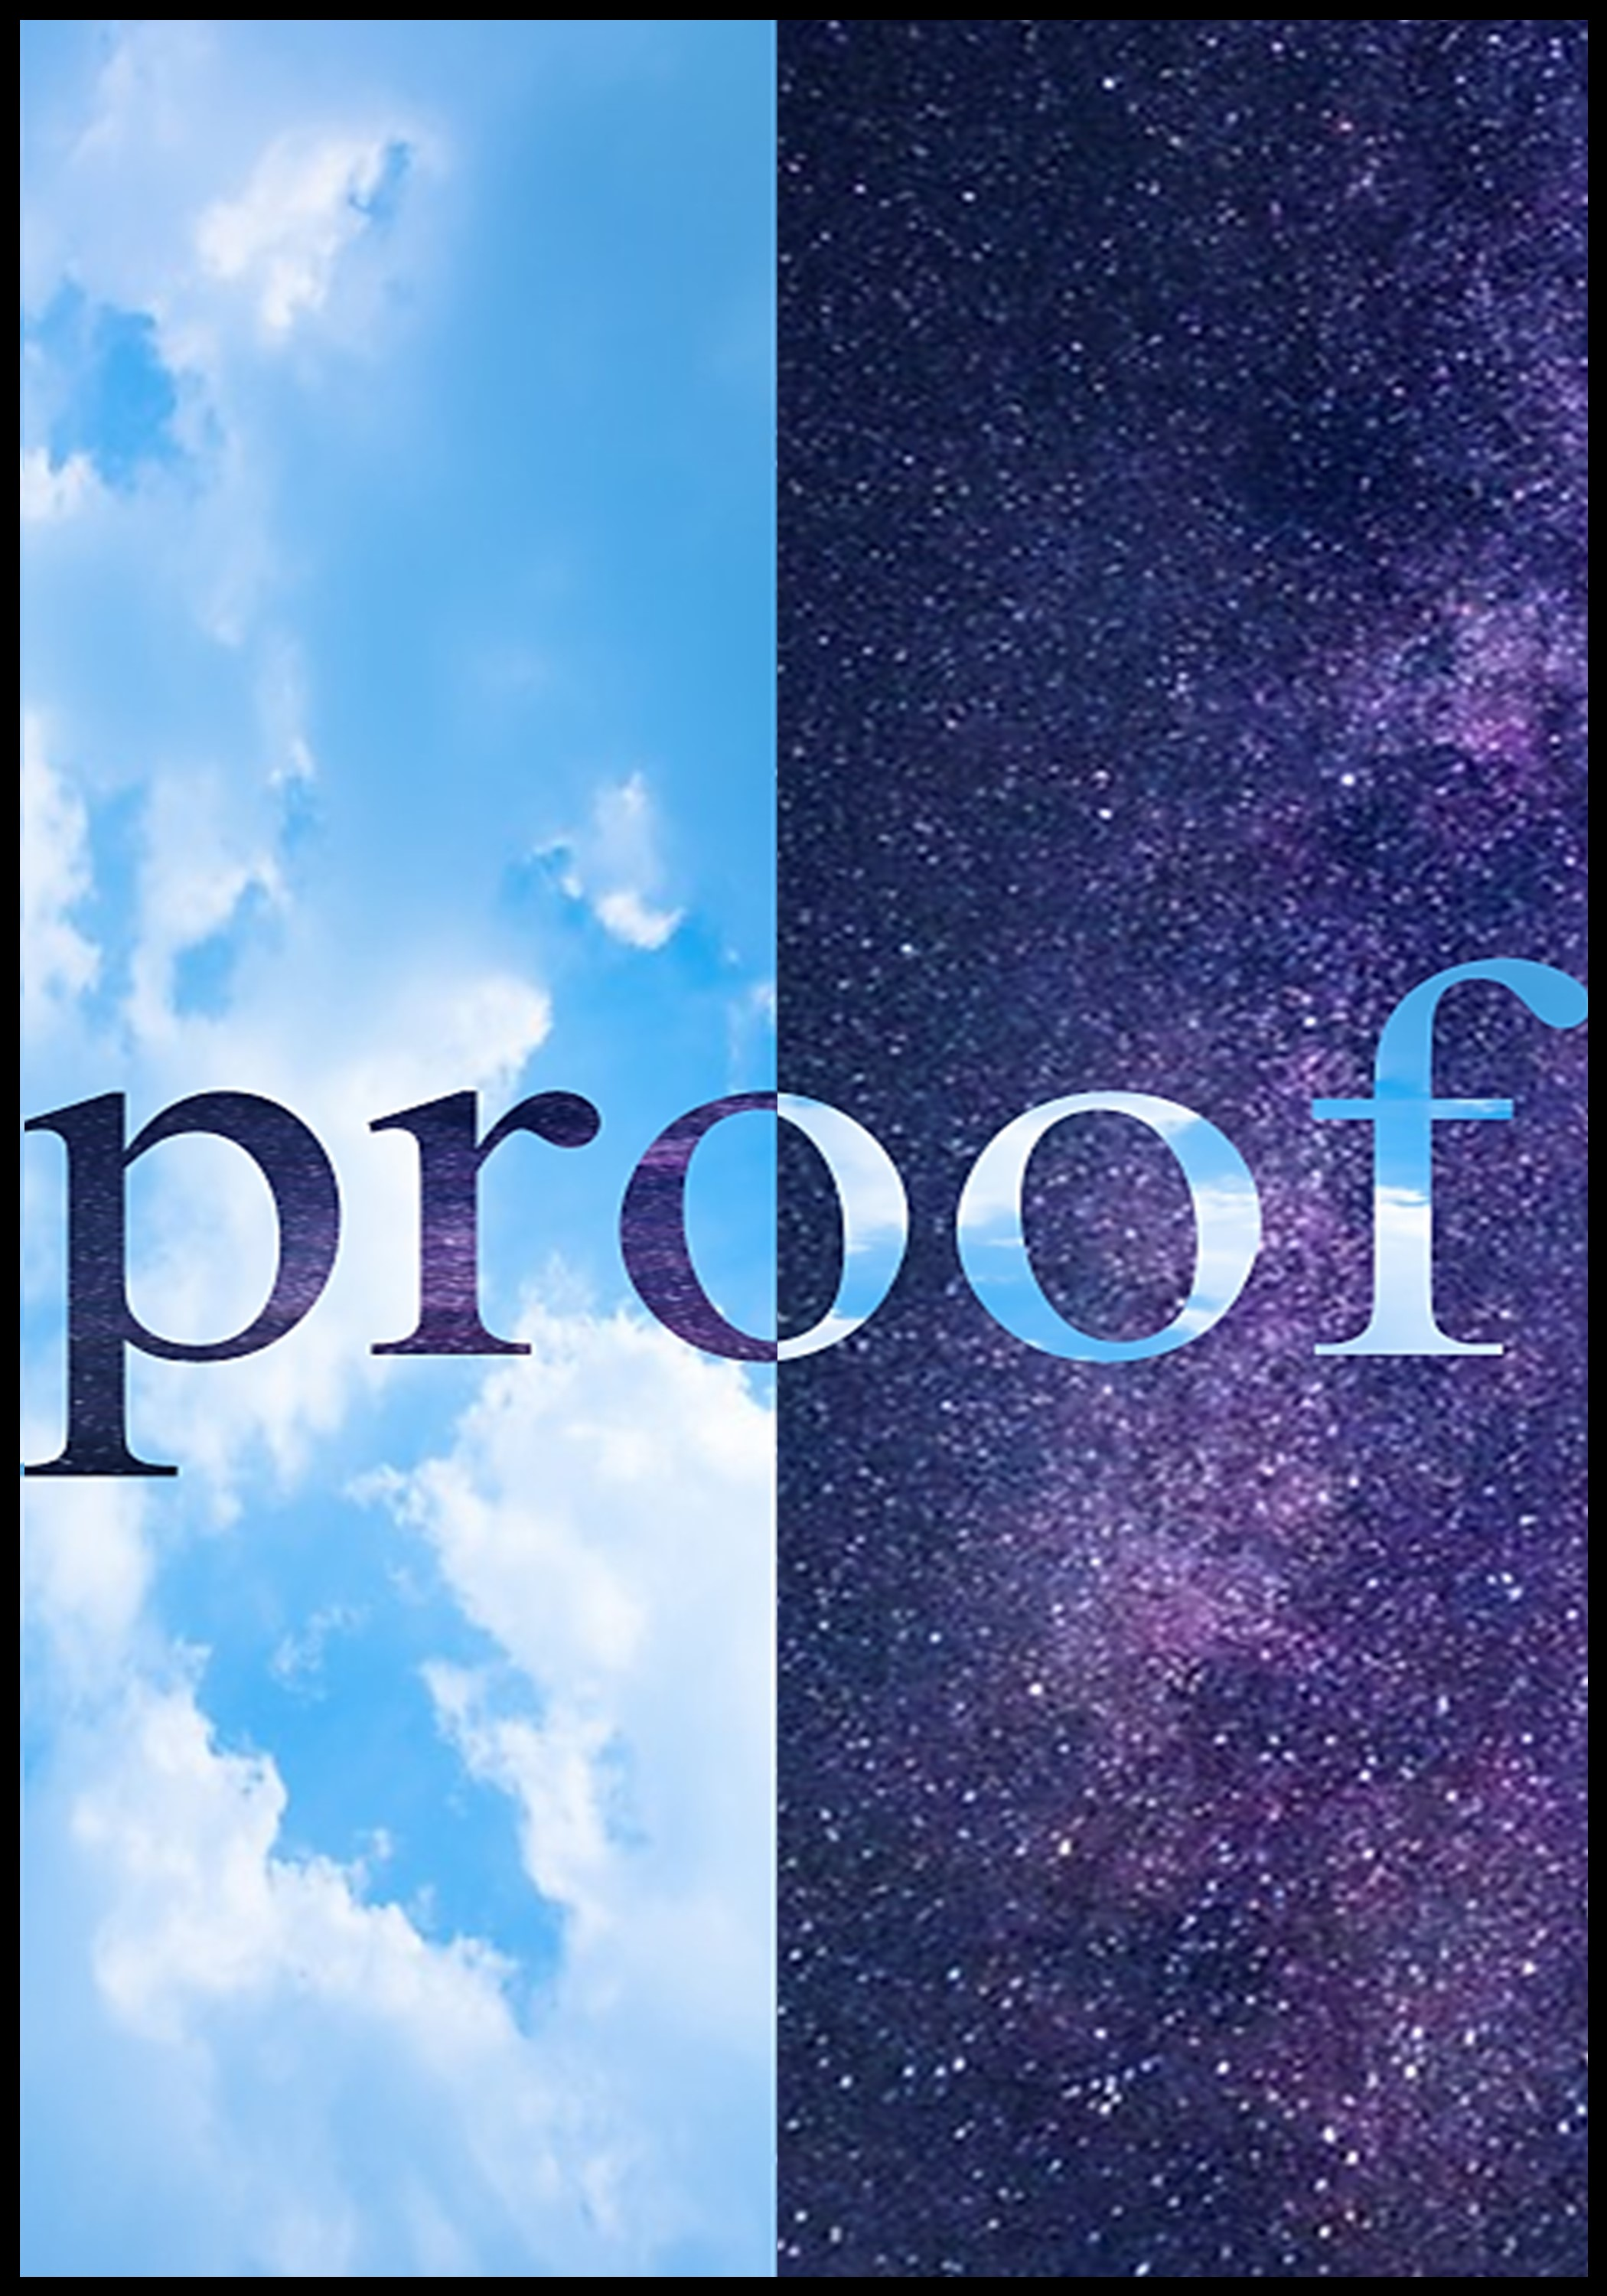 proof - proof presents a snapshot of the author's own multifaceted existence. Chanel captures her experience of being a black woman, educator, poet, artist, engineer and researcher with a stream of consciousness style reflection. Through art, poetry, short stories, and journal entries, Chanel presents herself and readers with